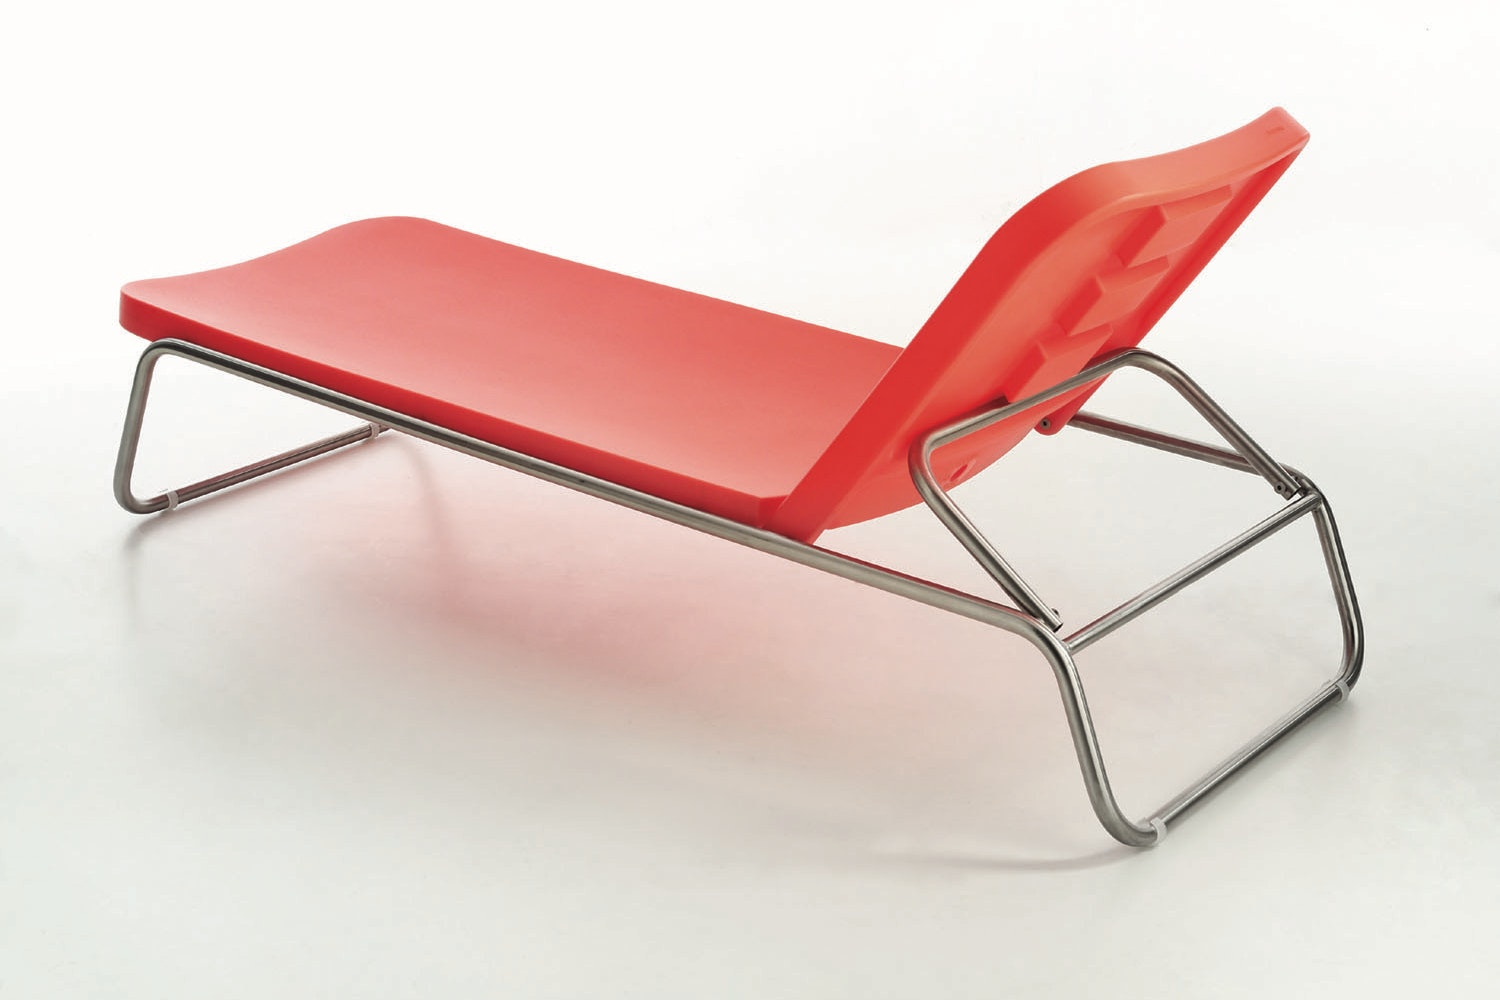 Time Out Chaise Longue by Rodolfo Dordoni for Serralunga